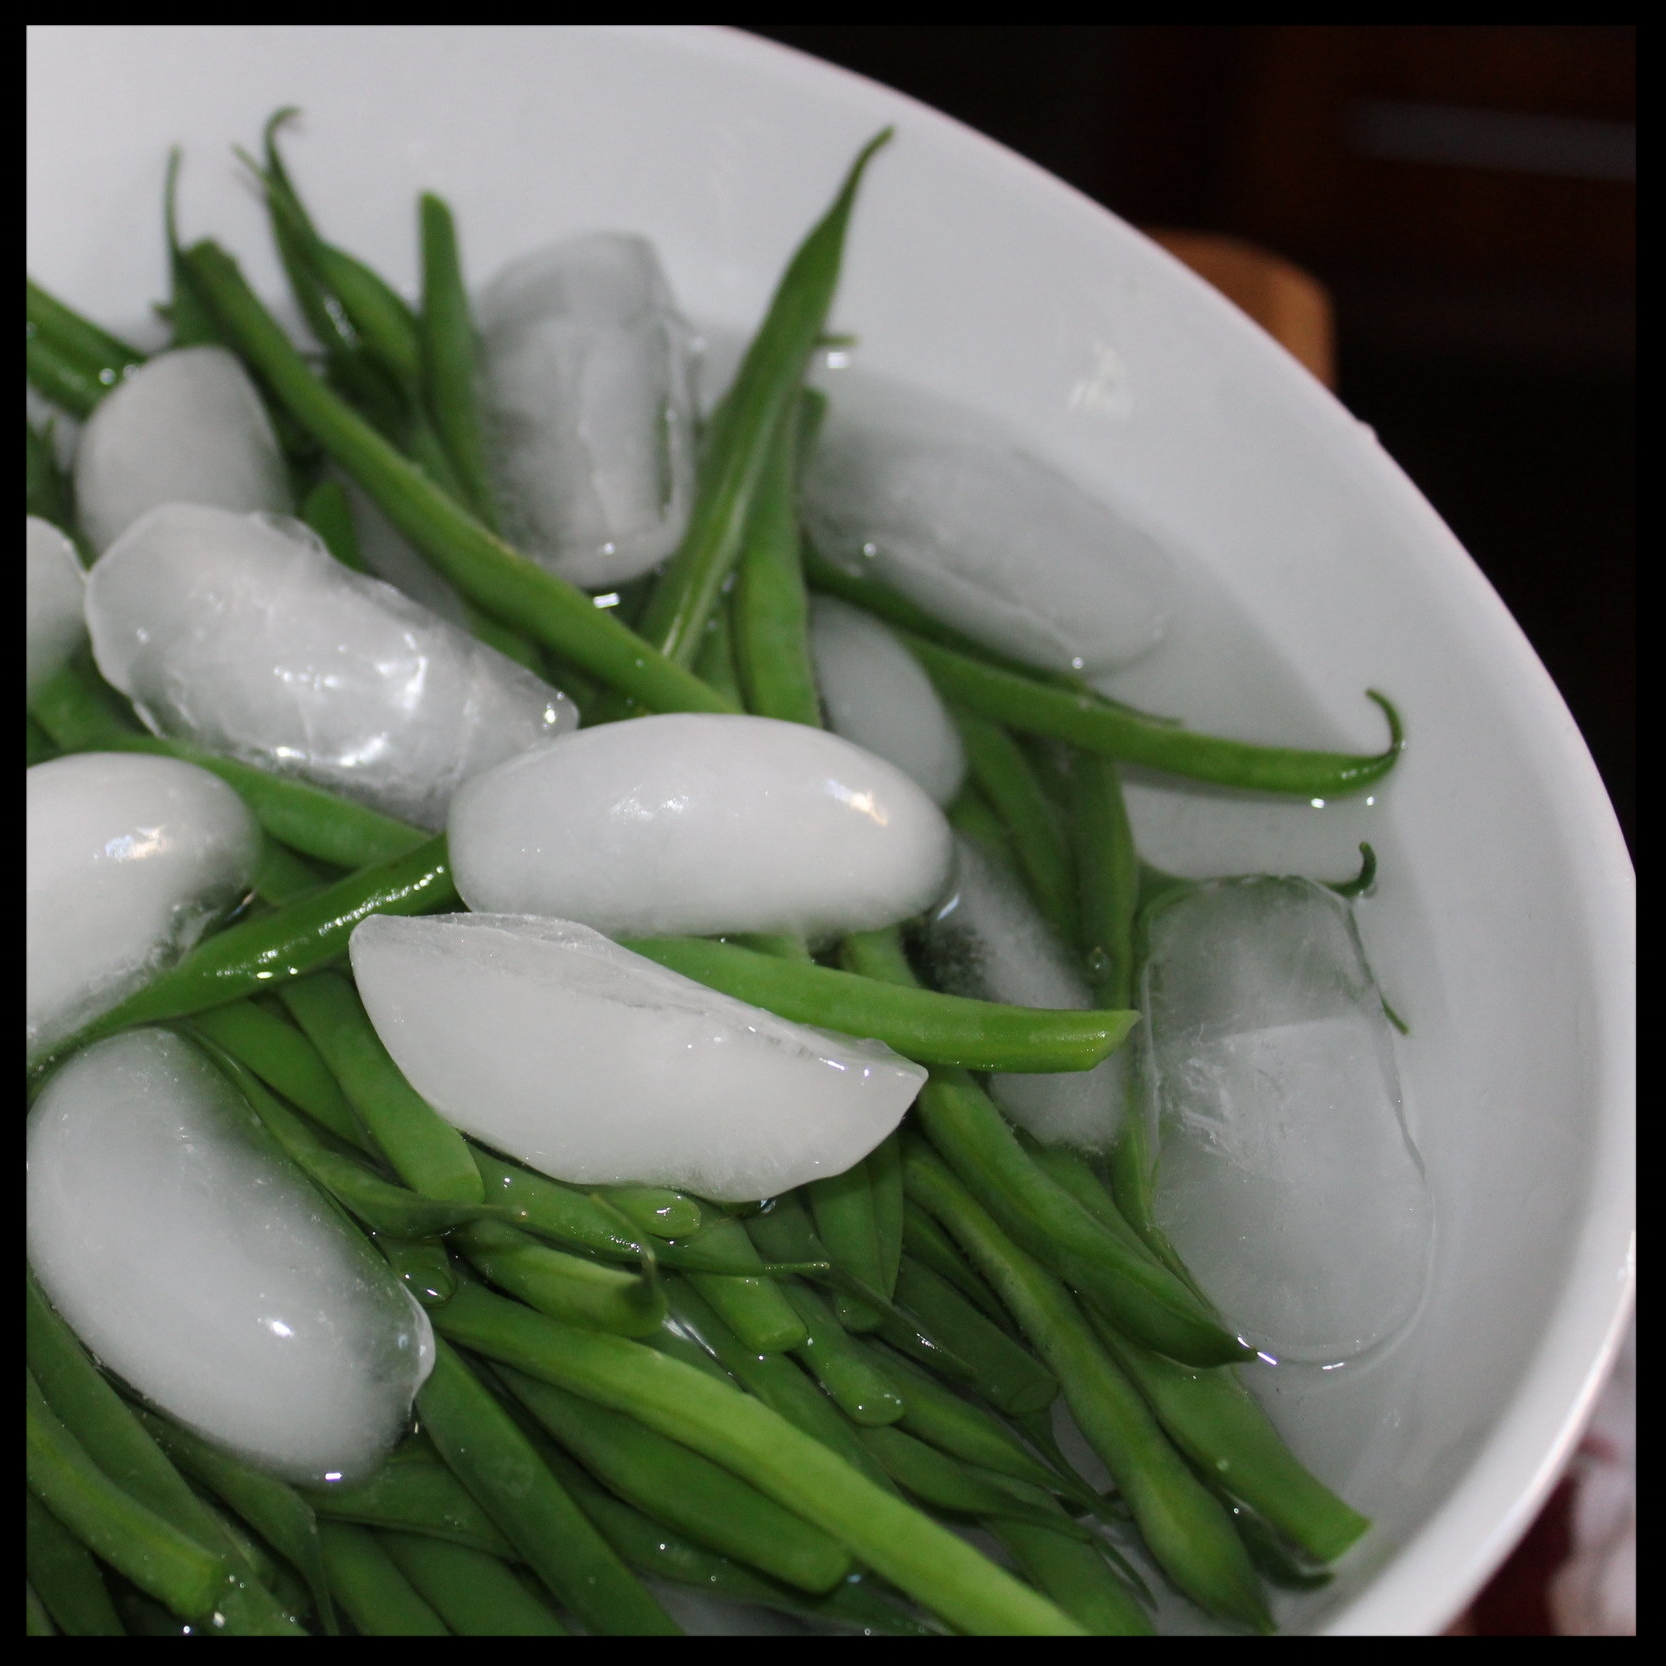 3. With tongs remove the veggies and place in a bowl filled with ice and water. Let cool. Remove to a strainer and refrigerate until ready to use.